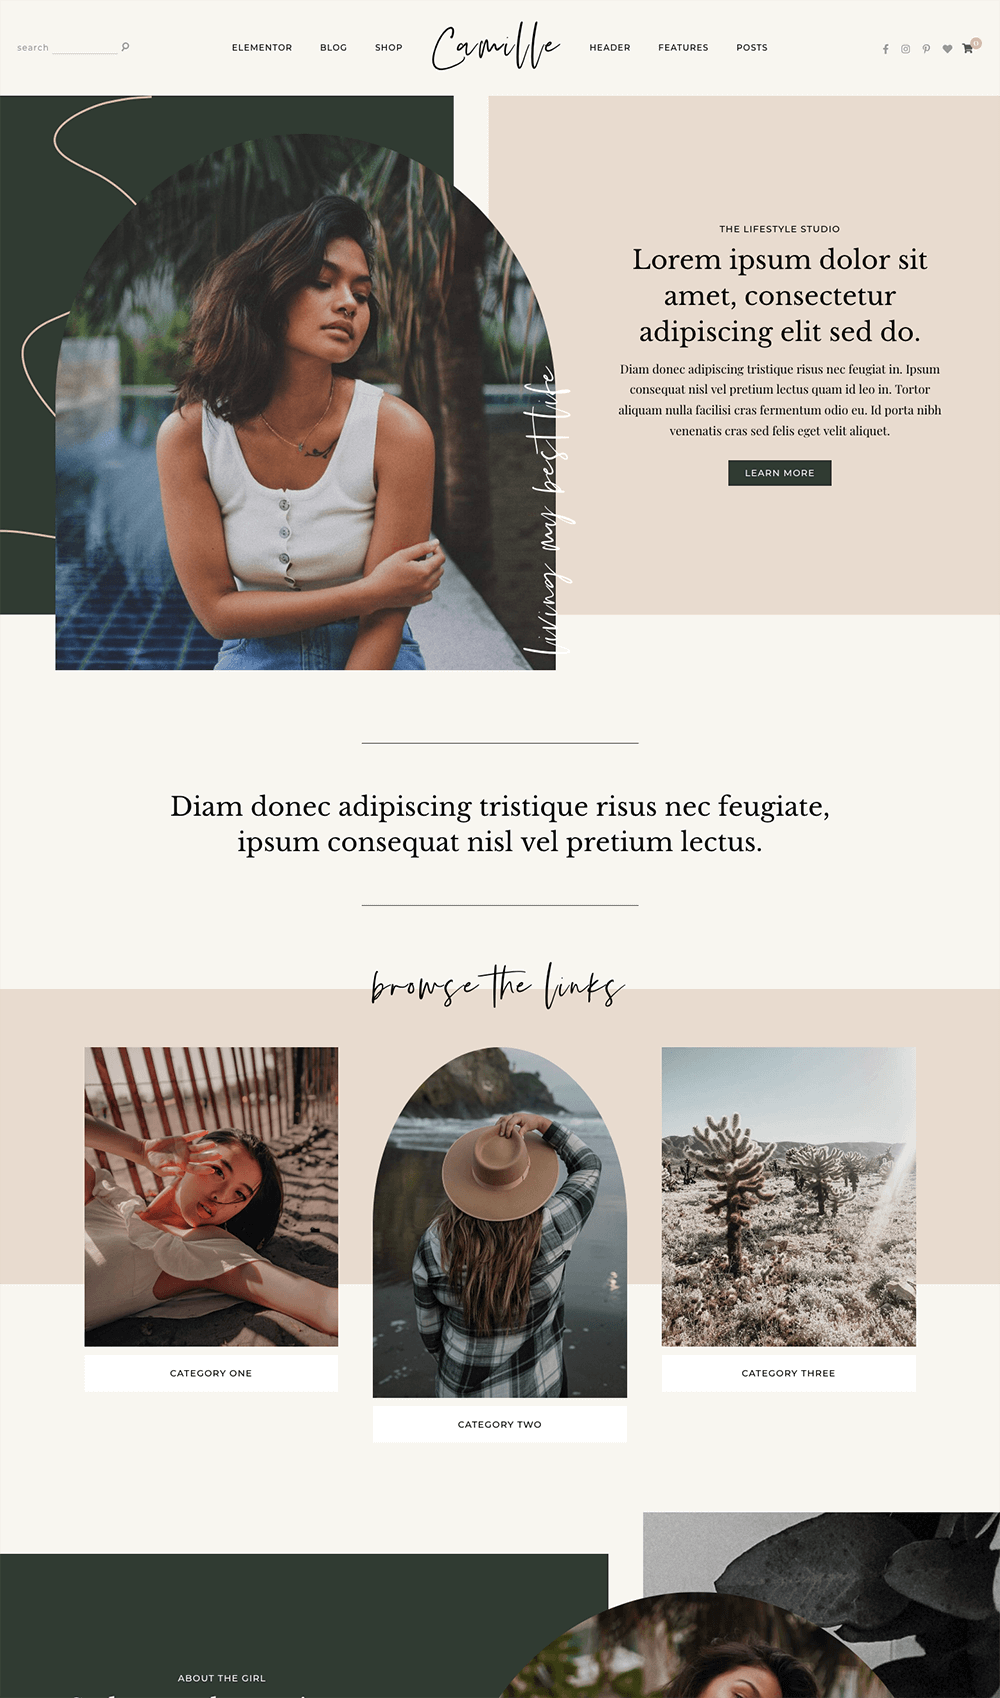 camille_long_theme_image